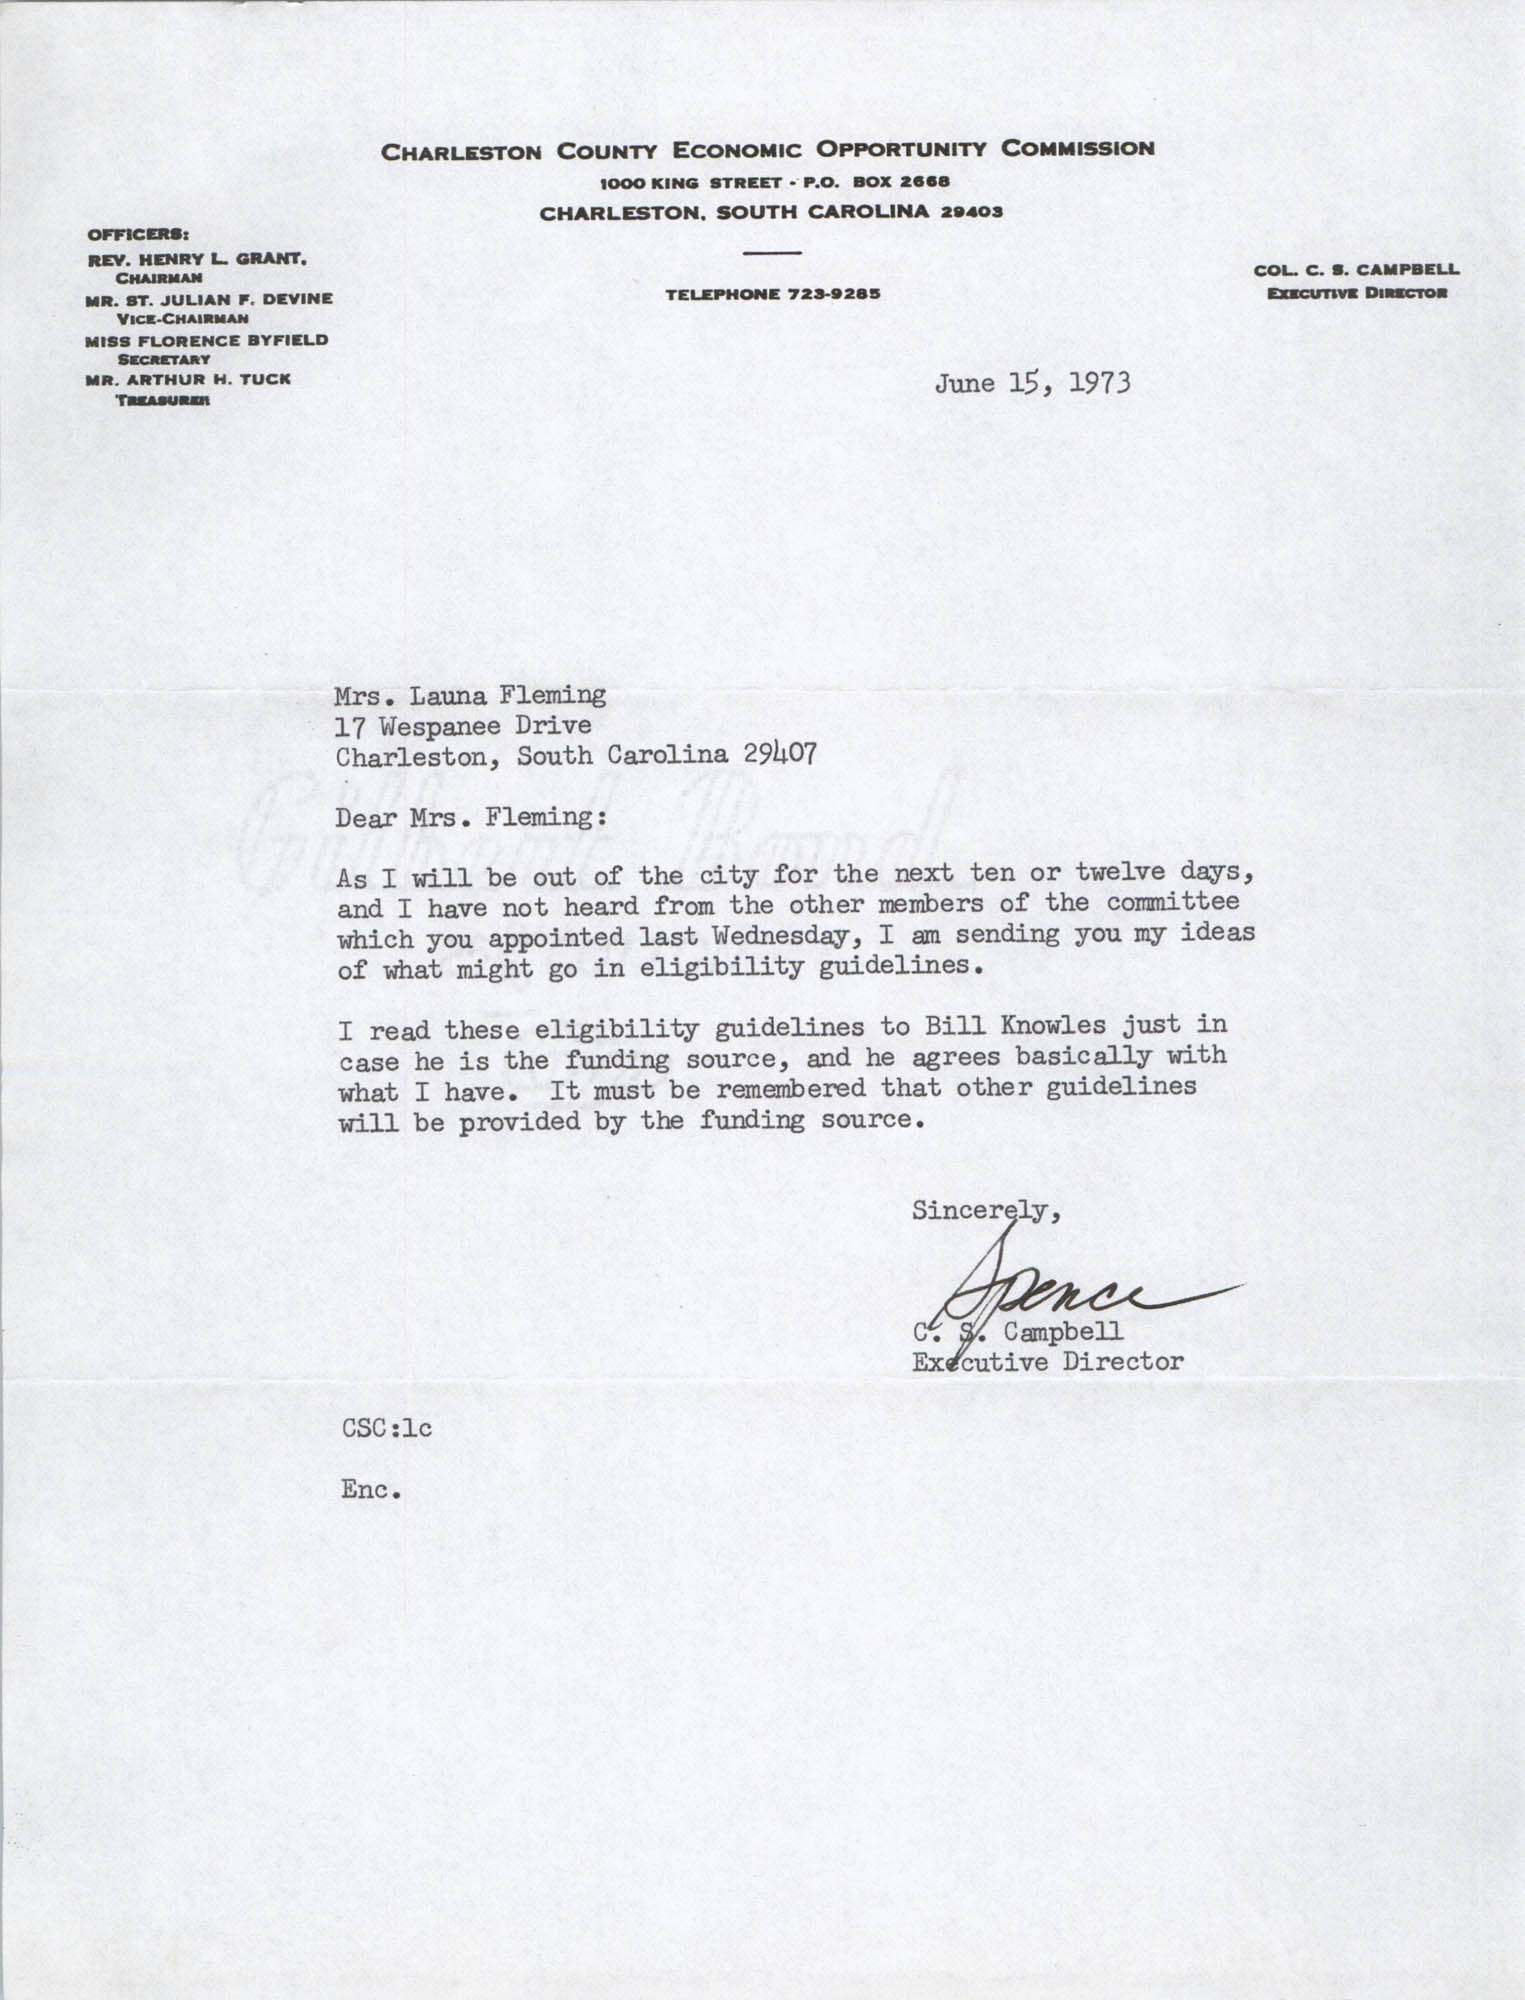 Letter from C. S. Campbell to Launa Fleming, February 2, 1973